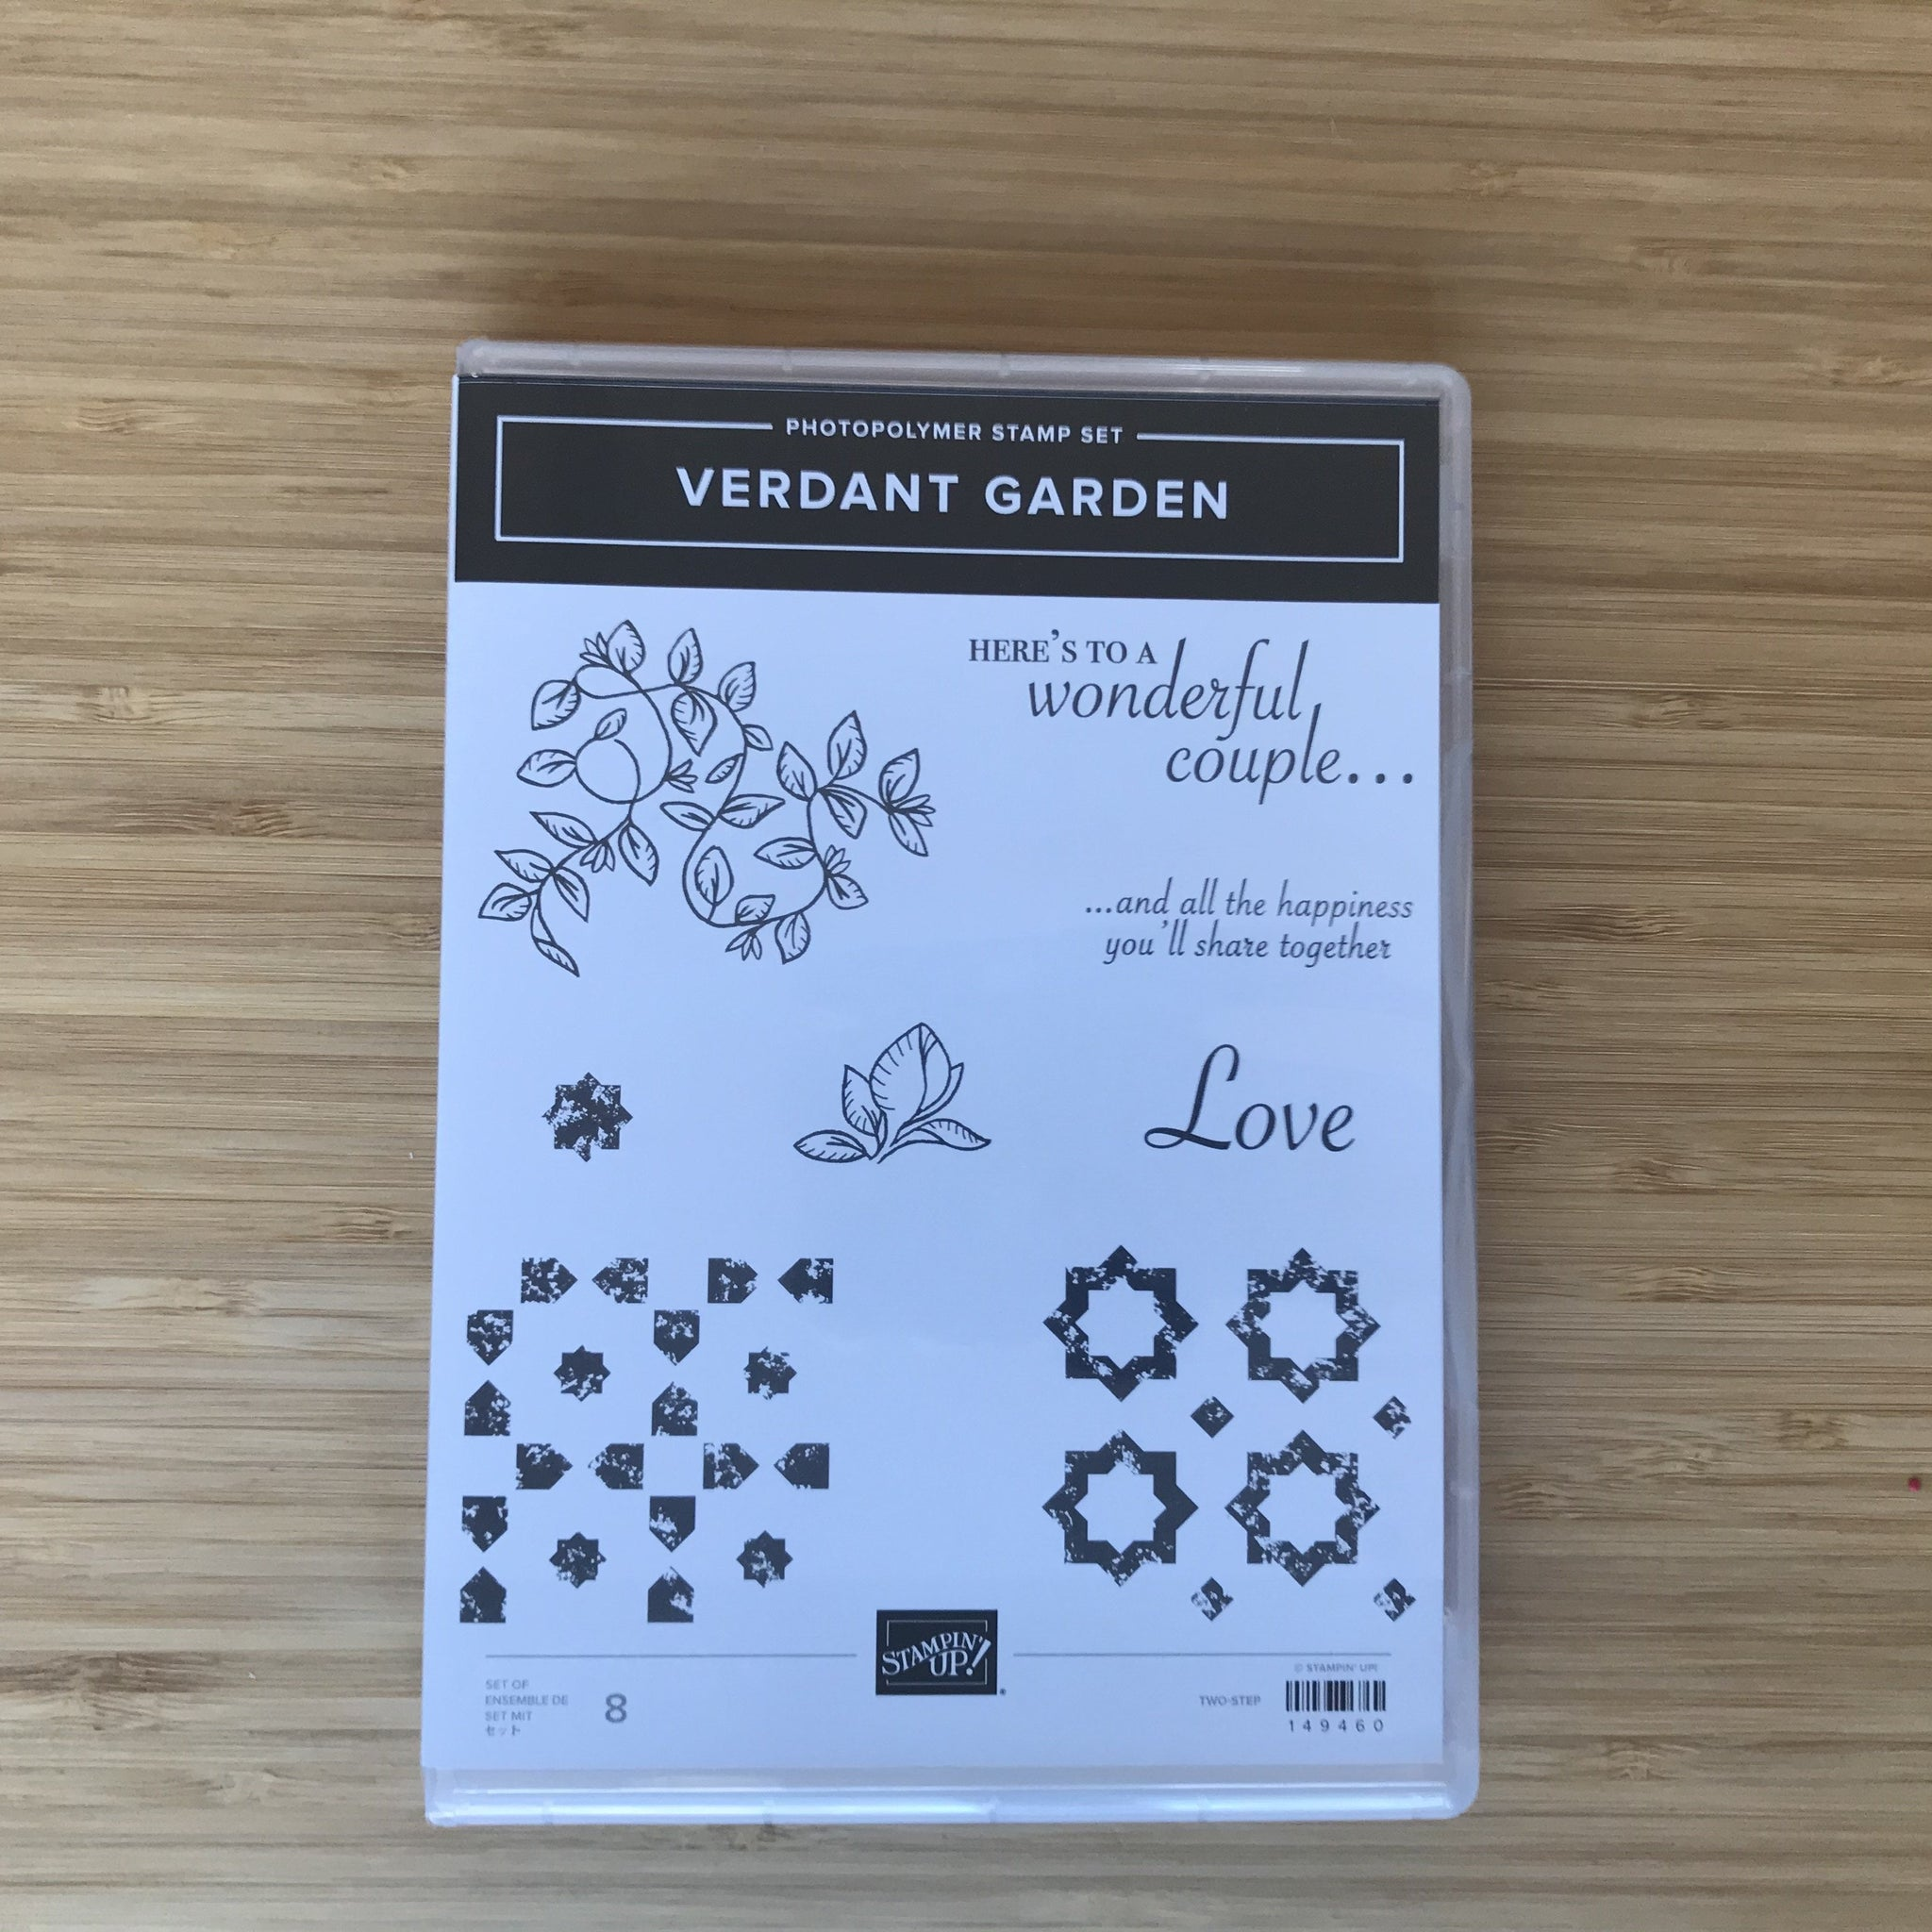 Verdant Garden | Retired Photopolymer Stamp Set | Stampin' Up!®